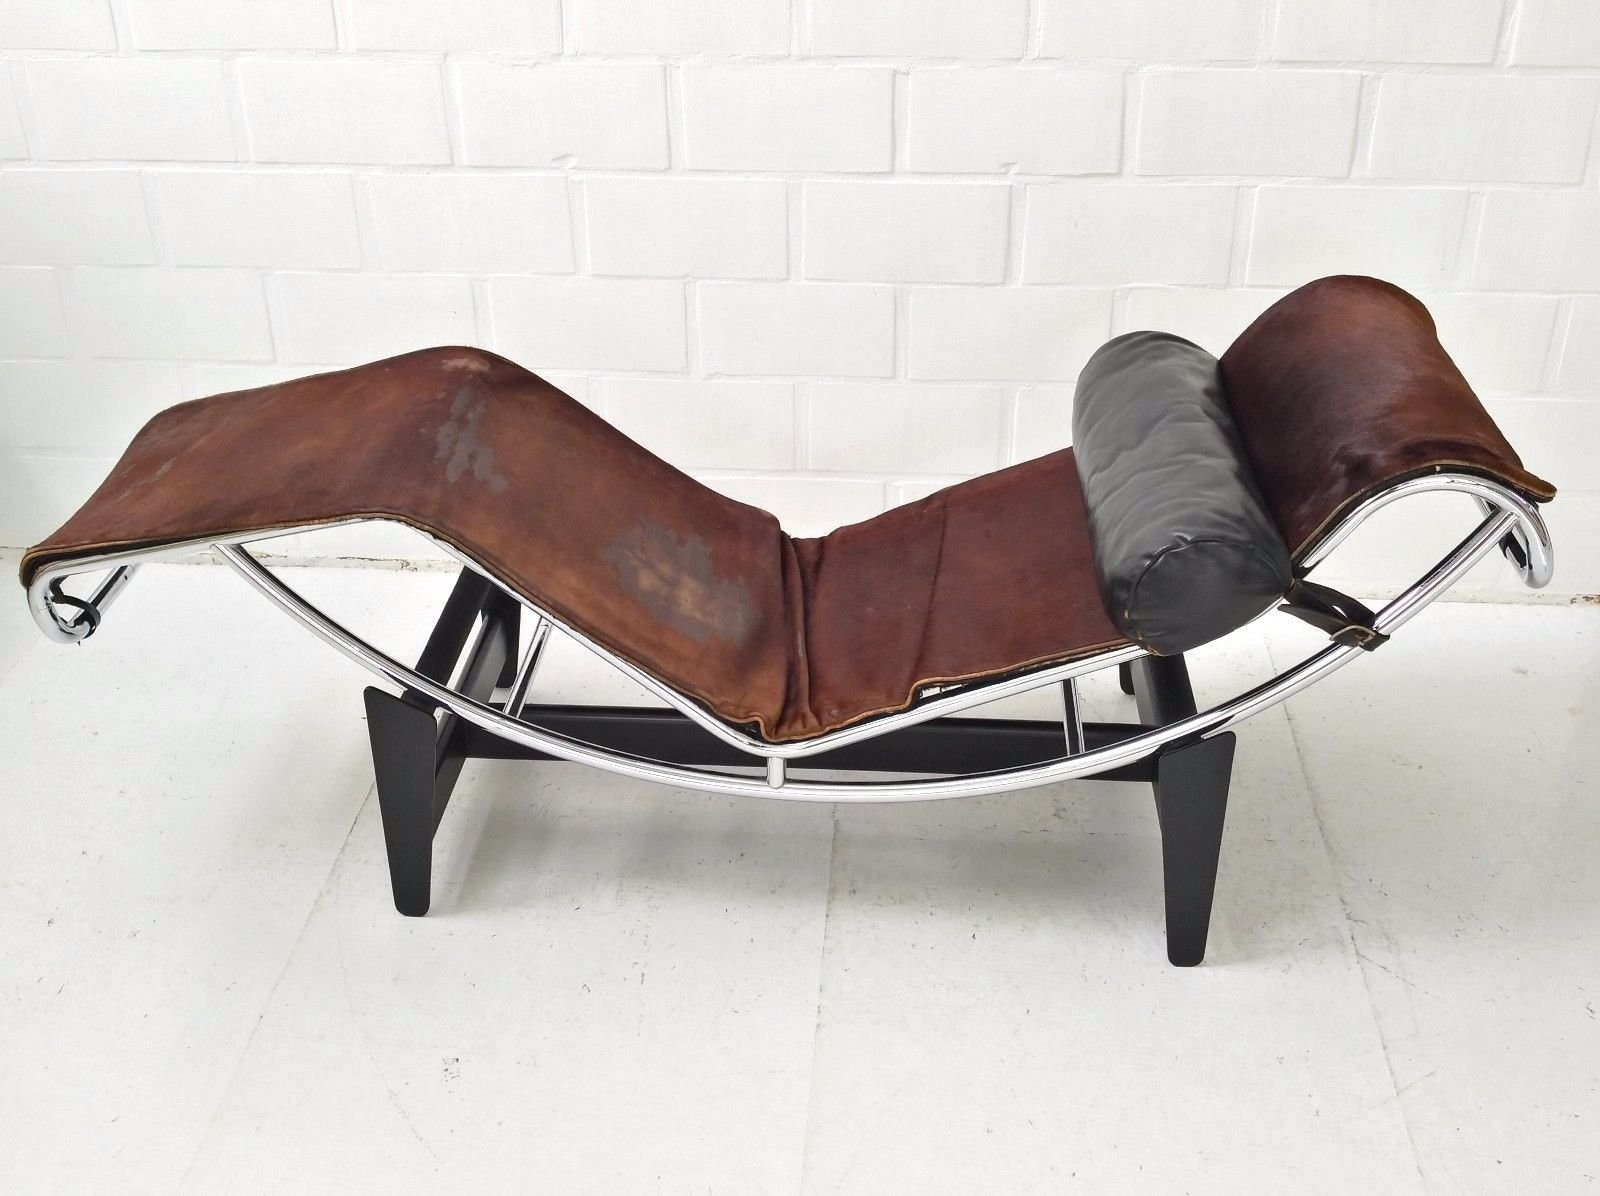 Lc4 chaise longue by le corbusier charlotte perriand for Chaise longe le corbusier